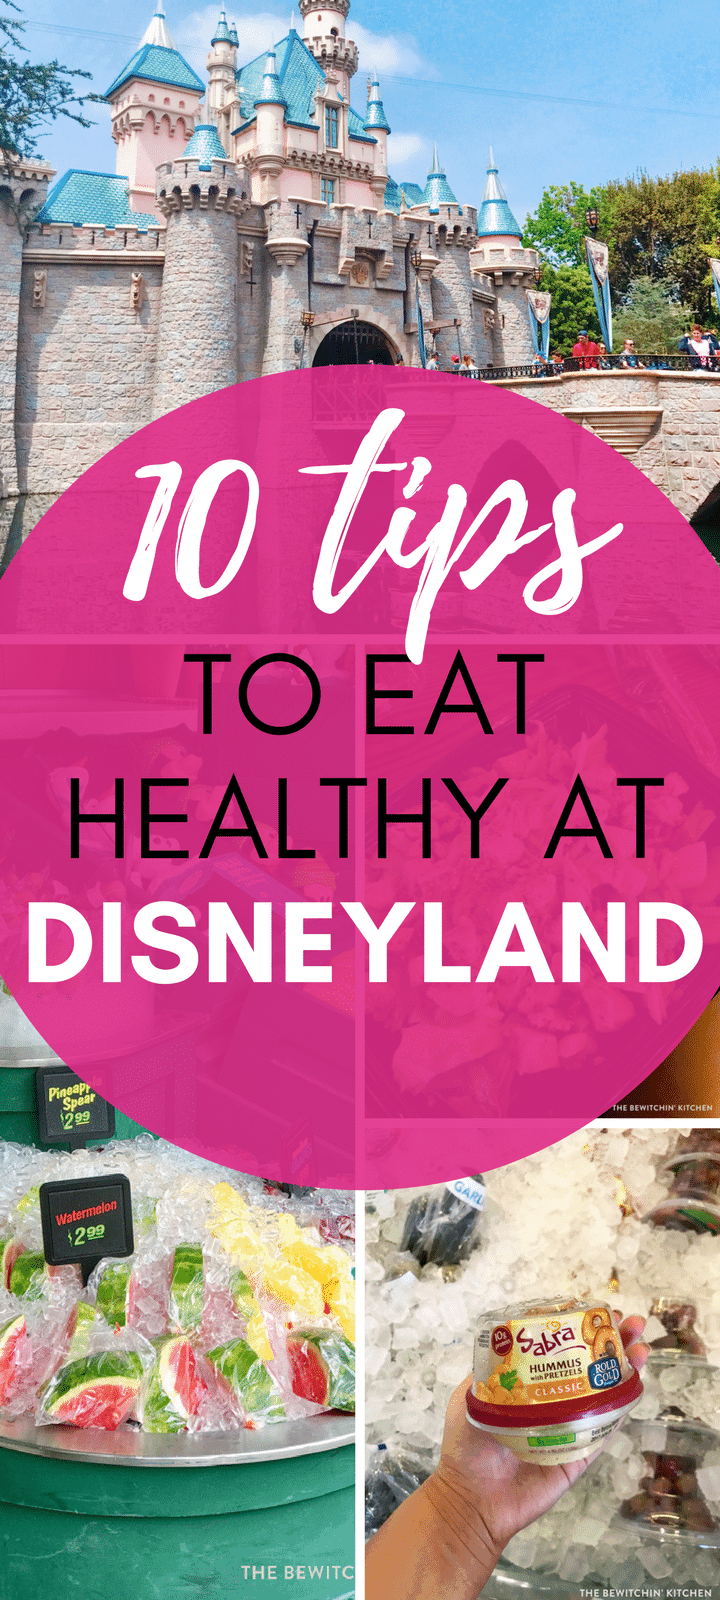 10 tips to eat healthy at Disneyland. Planning a trip to Southern California? Stay on track and make healthy choices at Disneyland in Anaheim! #healthydisney #eathealthyatdisneyland #ketodisney #keto #disneyland